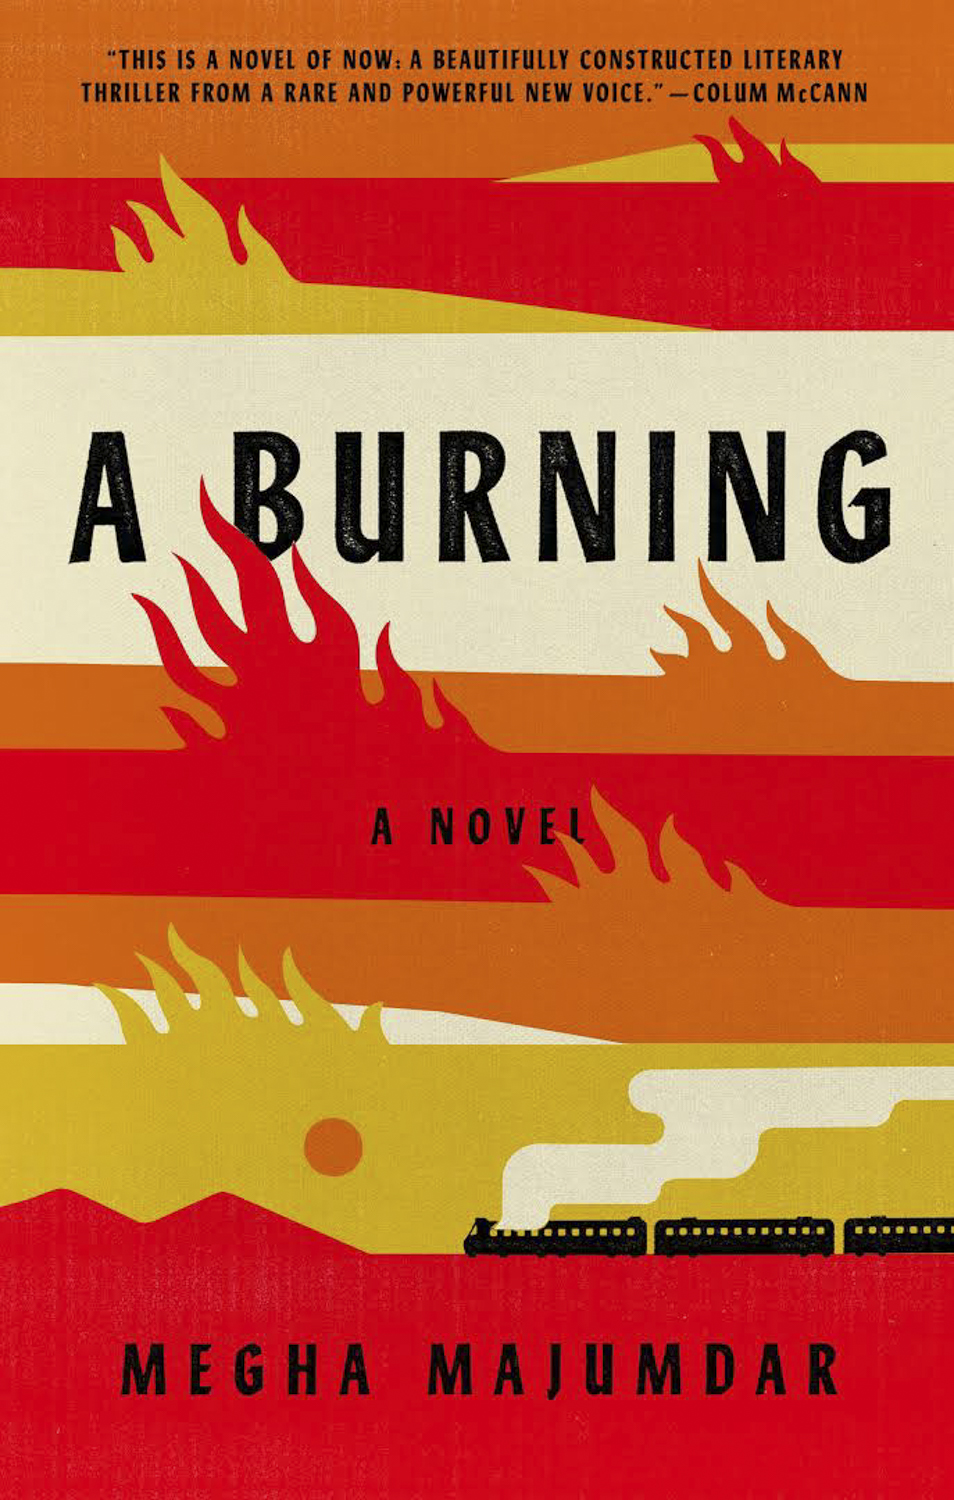 A Burning Review Megha Majumdar S Debut Is Unmissable Portrait Of India Ew Com